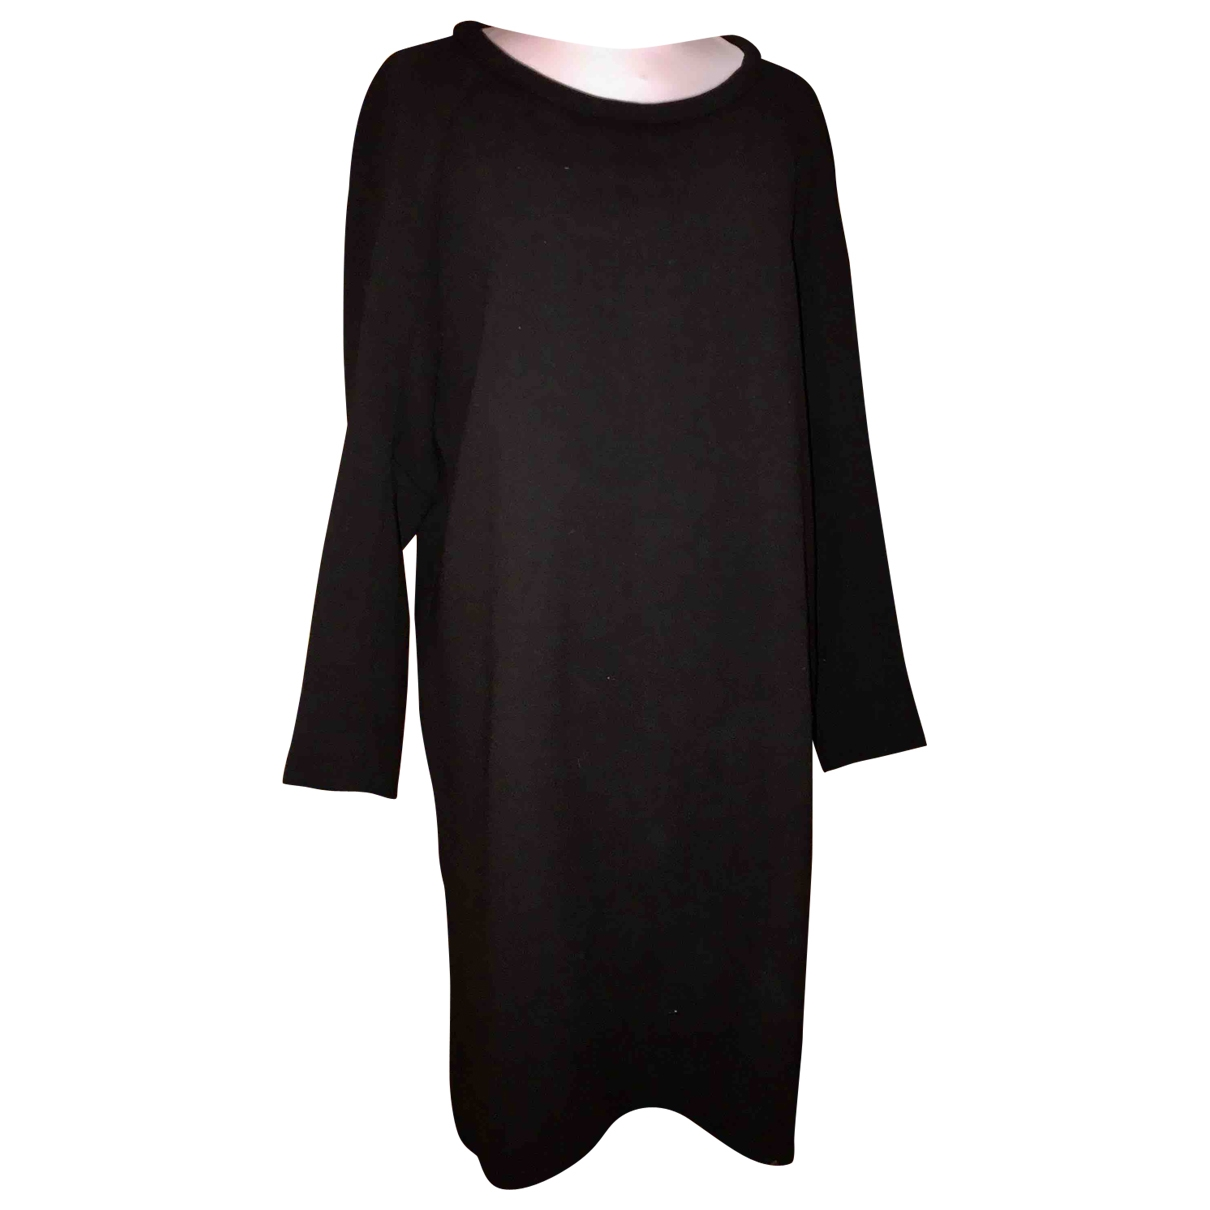 Cos \N Black dress for Women 38 FR